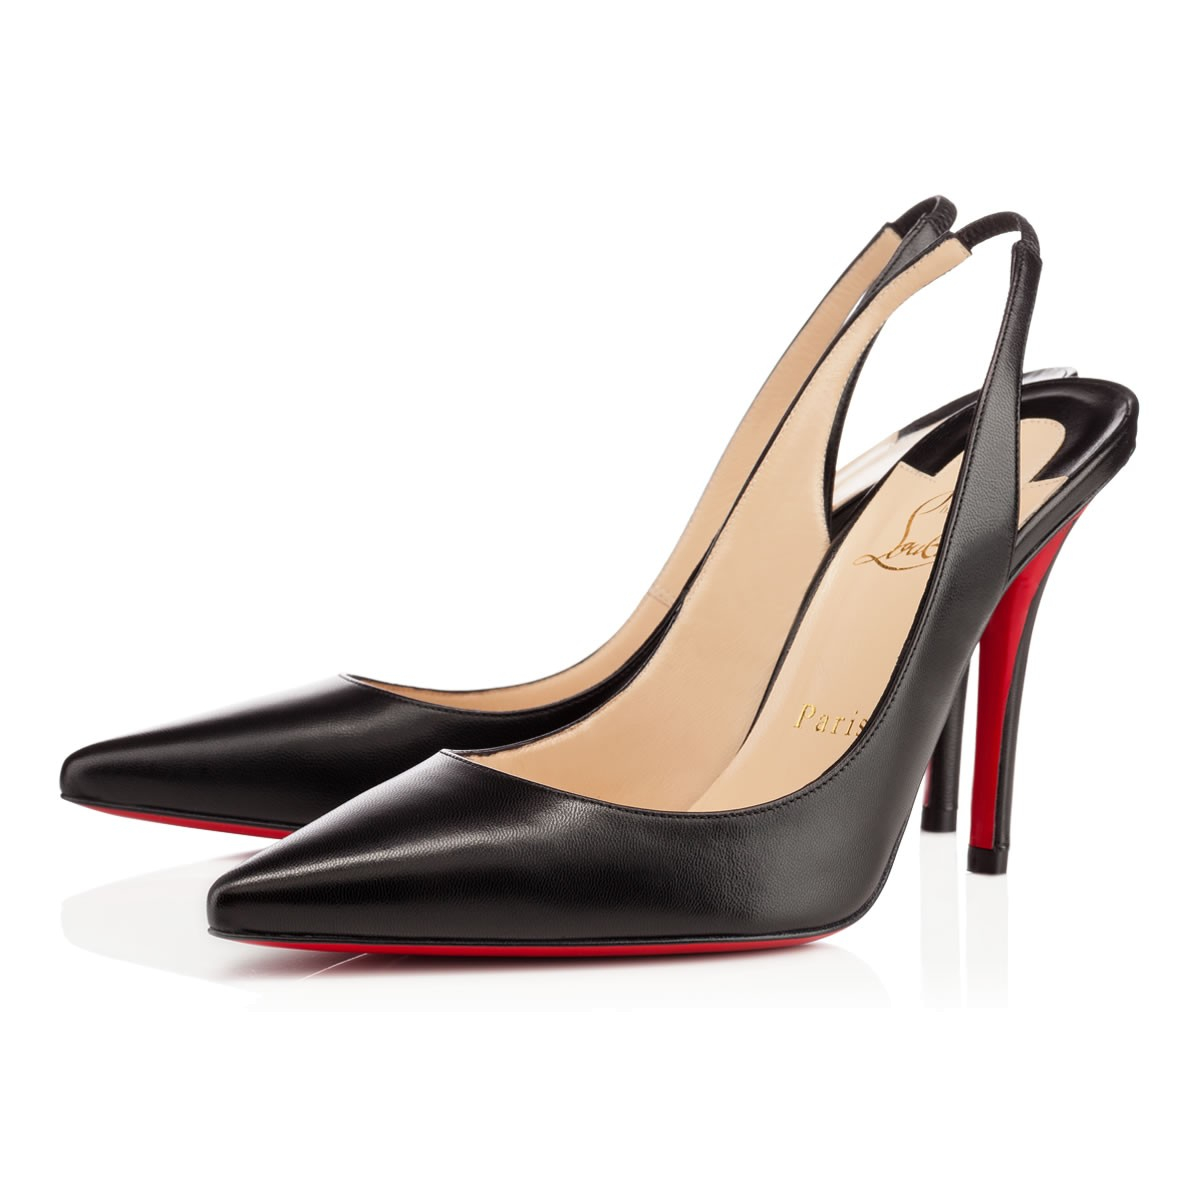 Lyst - Christian Louboutin Apostrophy Sling in Black b4a1694c9